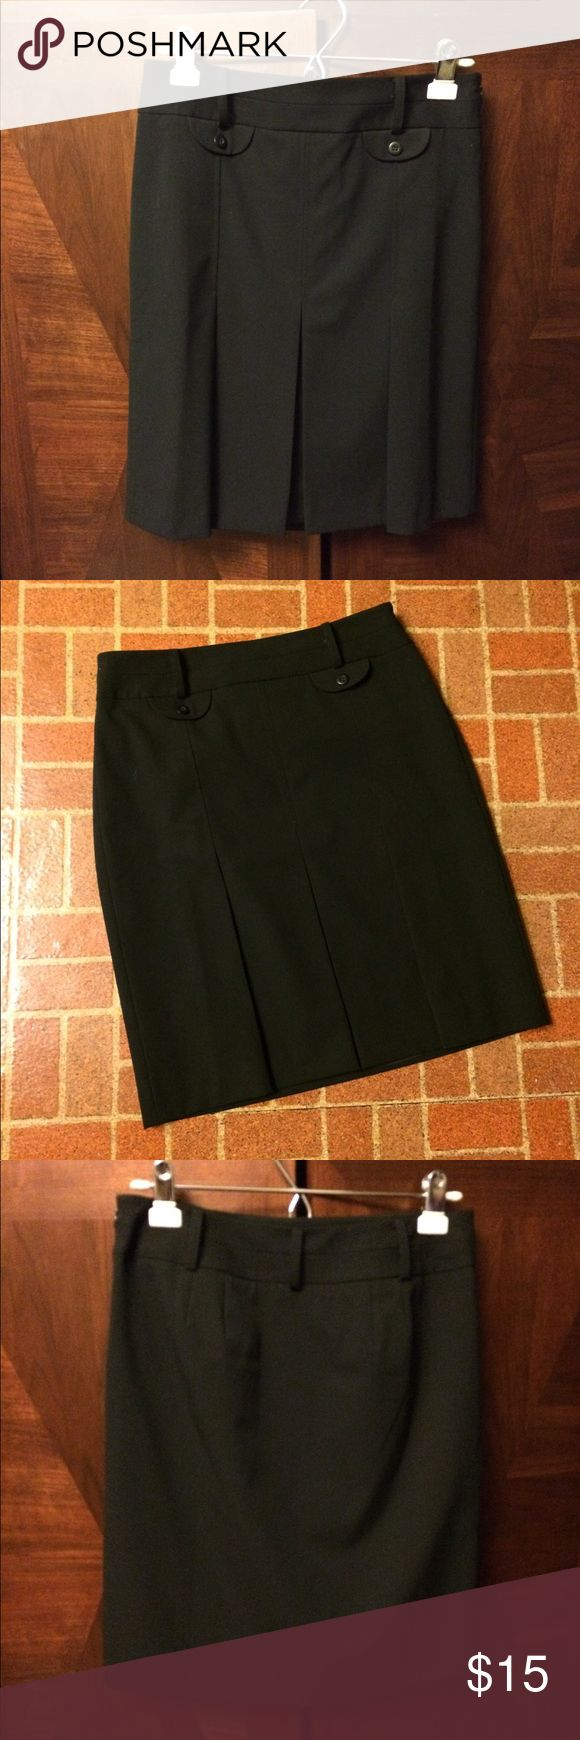 Anne Taylor LOFT Black Skirt Professional Anne Taylor black knee length skirt.  Two front pseudo pockets with buttons.  And pleats on lower part of skirt. LOFT Skirts